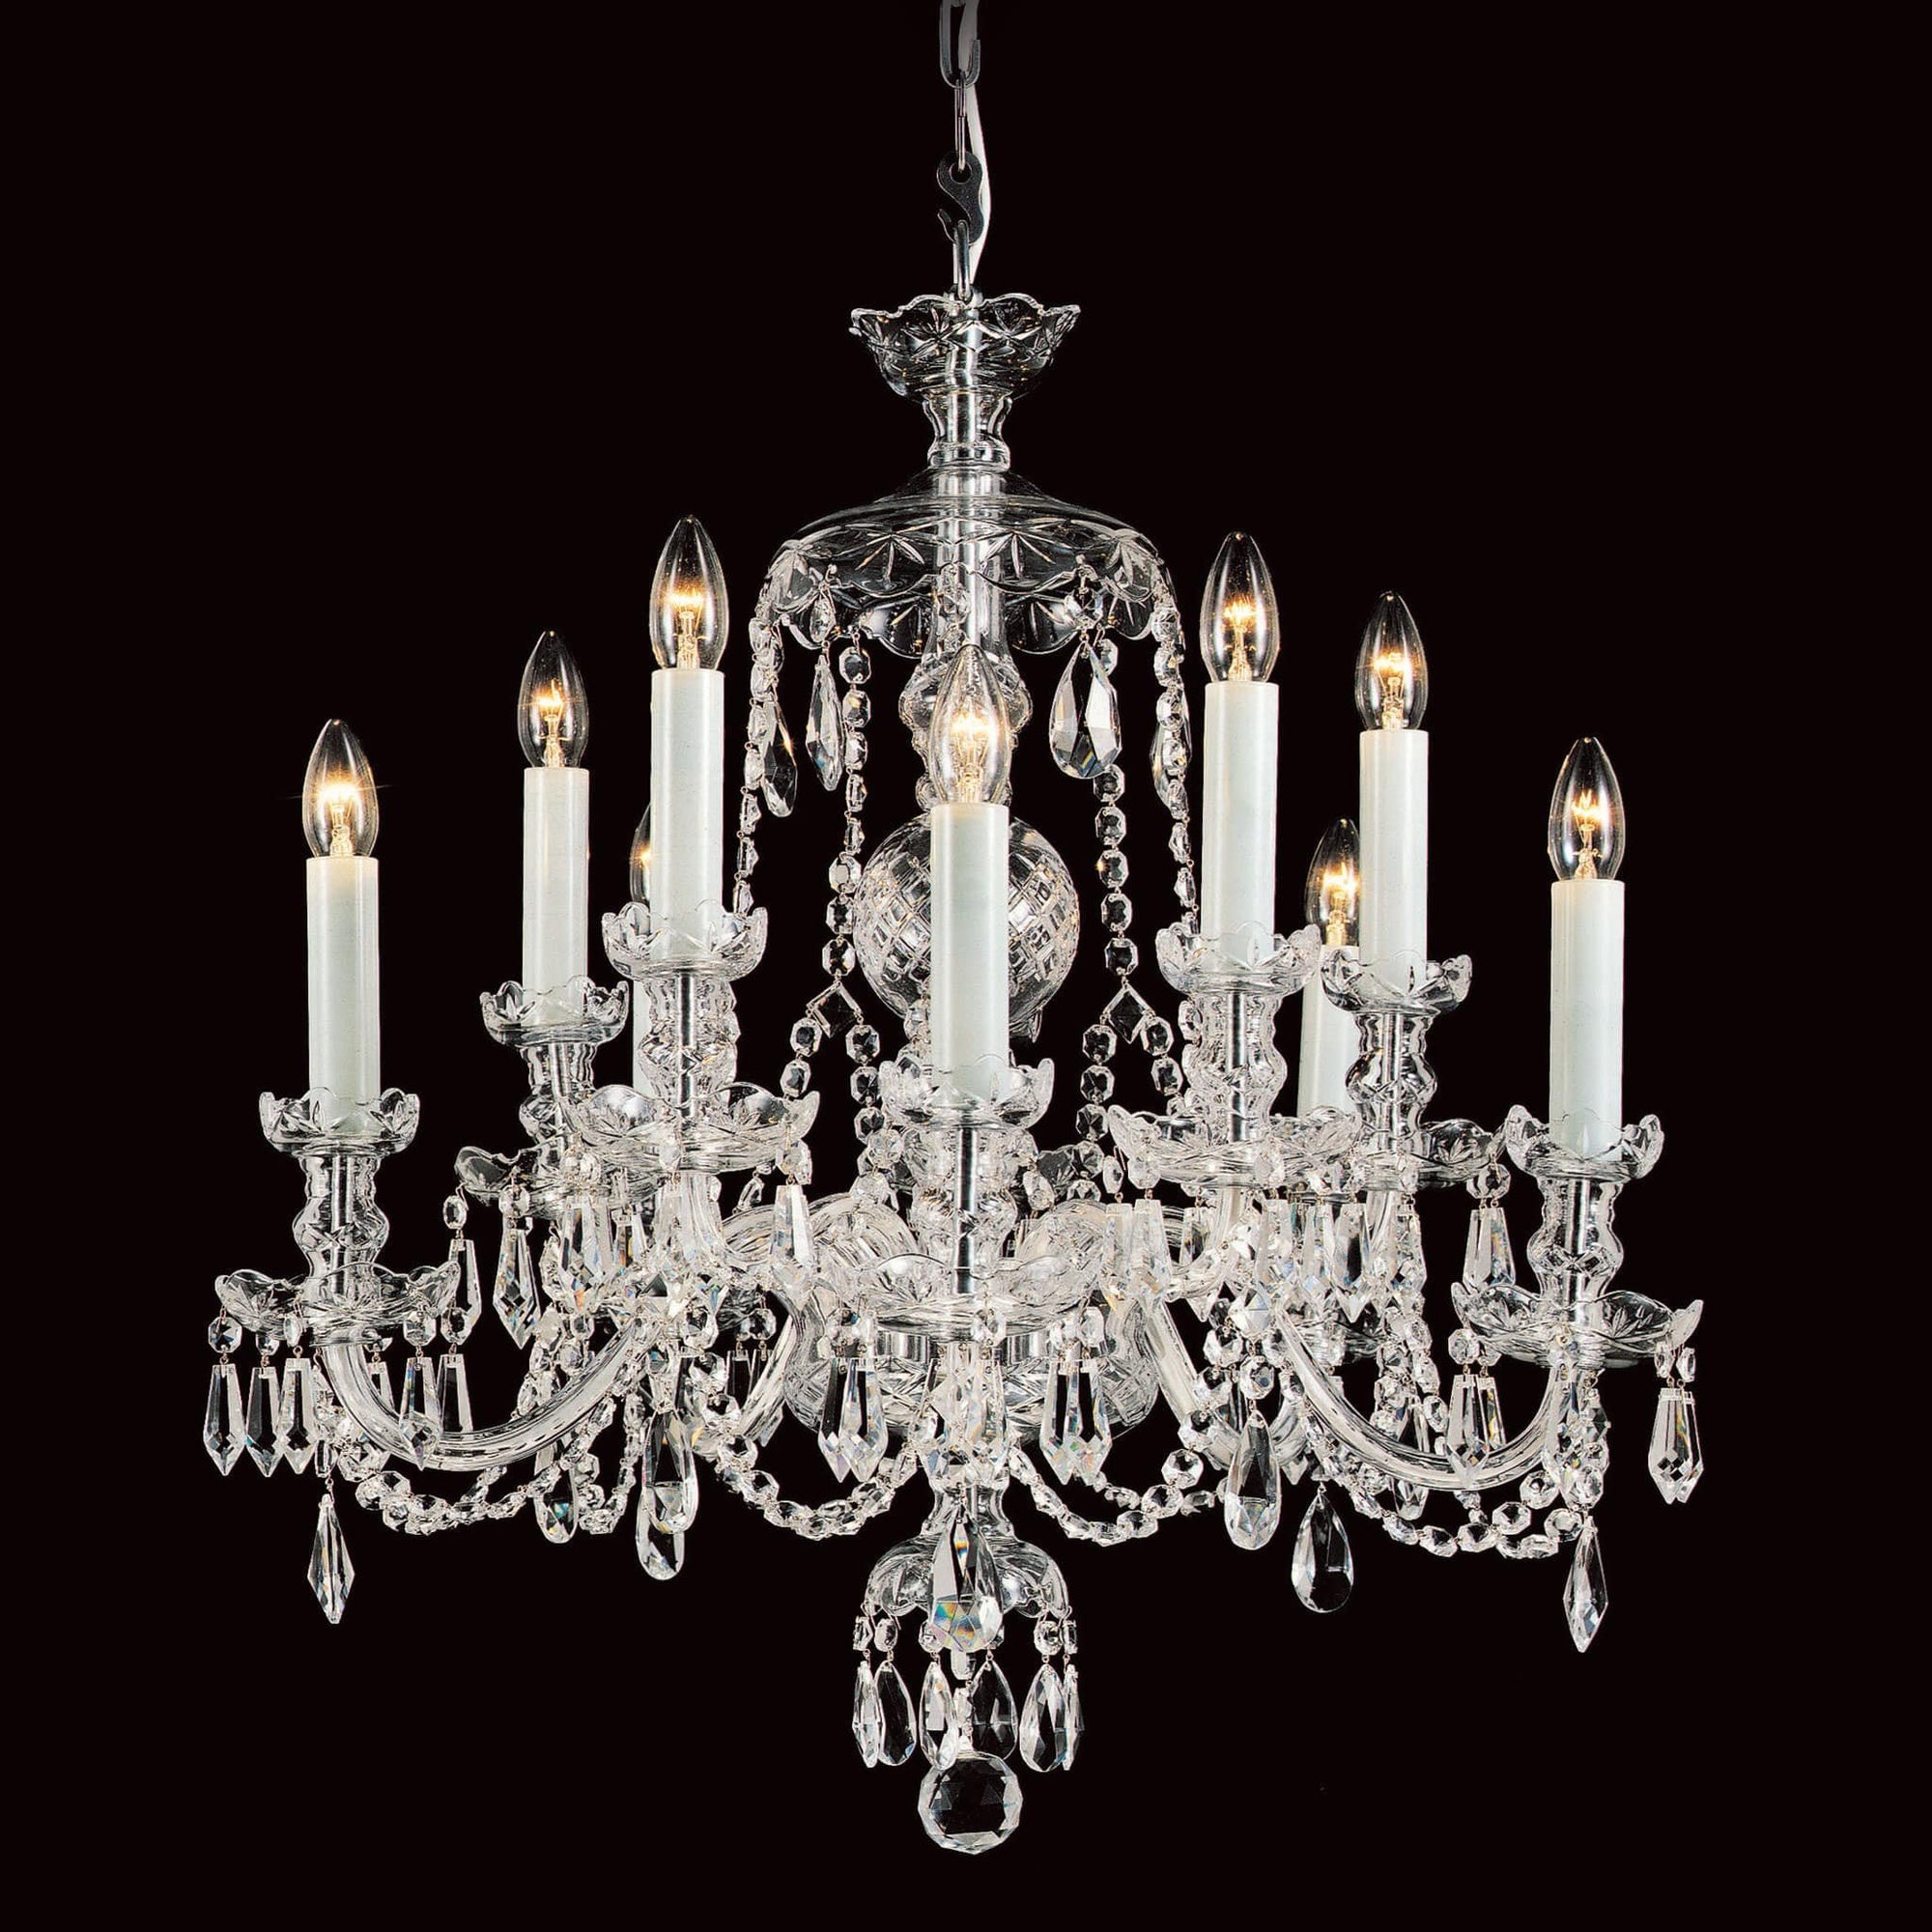 free shipping f0136 76ac6 Impex Frydek 10 Light Lead Crystal Georgian Chandelier